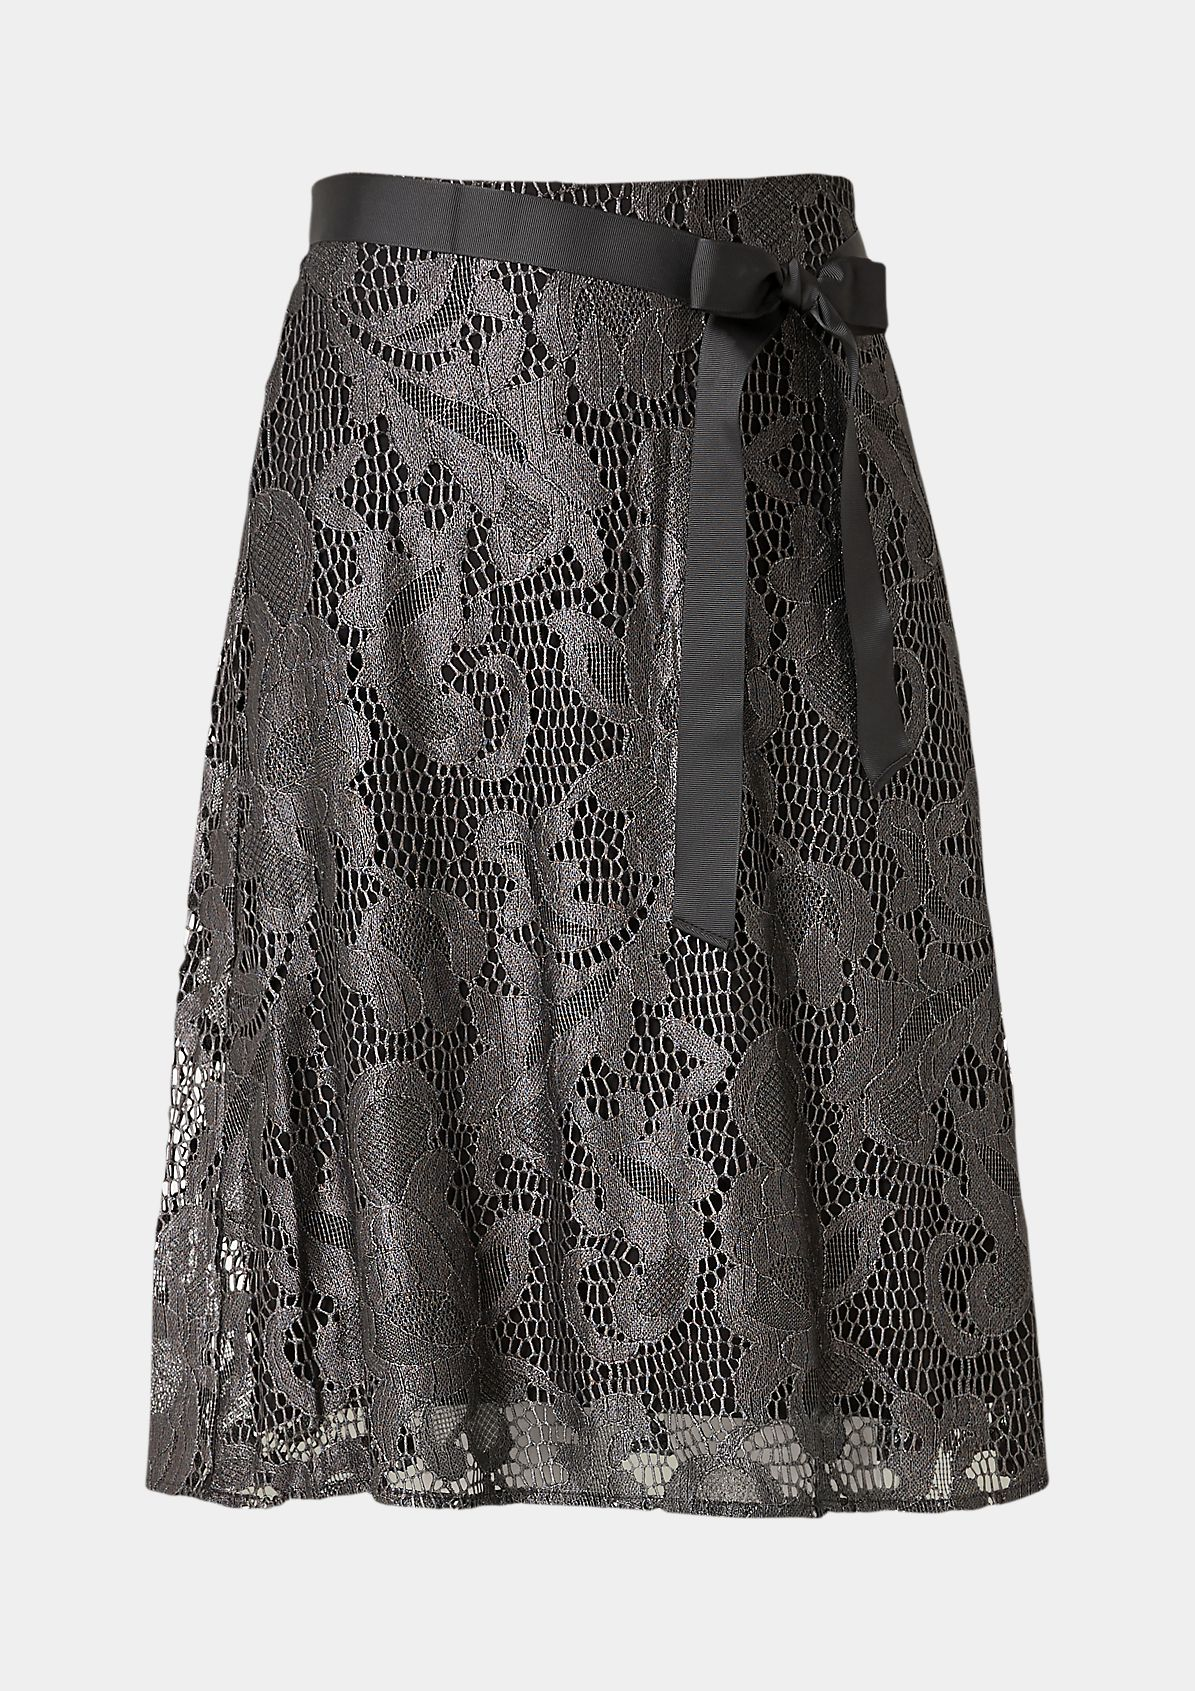 Business skirt made of delicate lace from comma